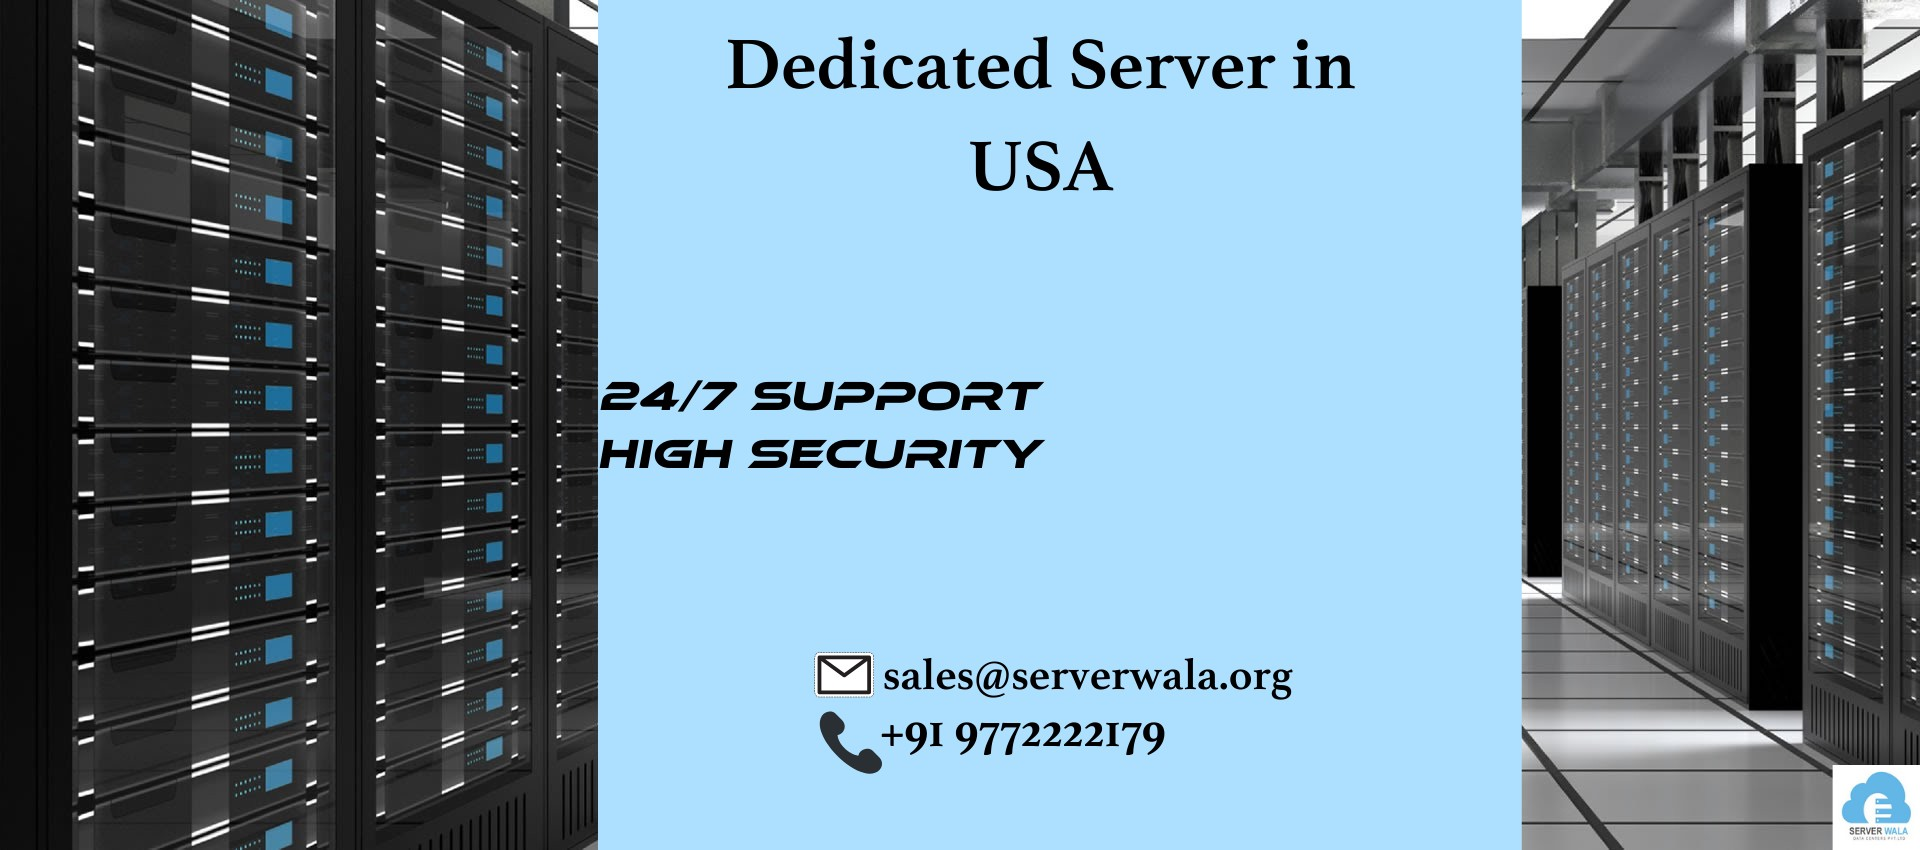 Cheap Dedicated Server USA | Dedicated Server USA